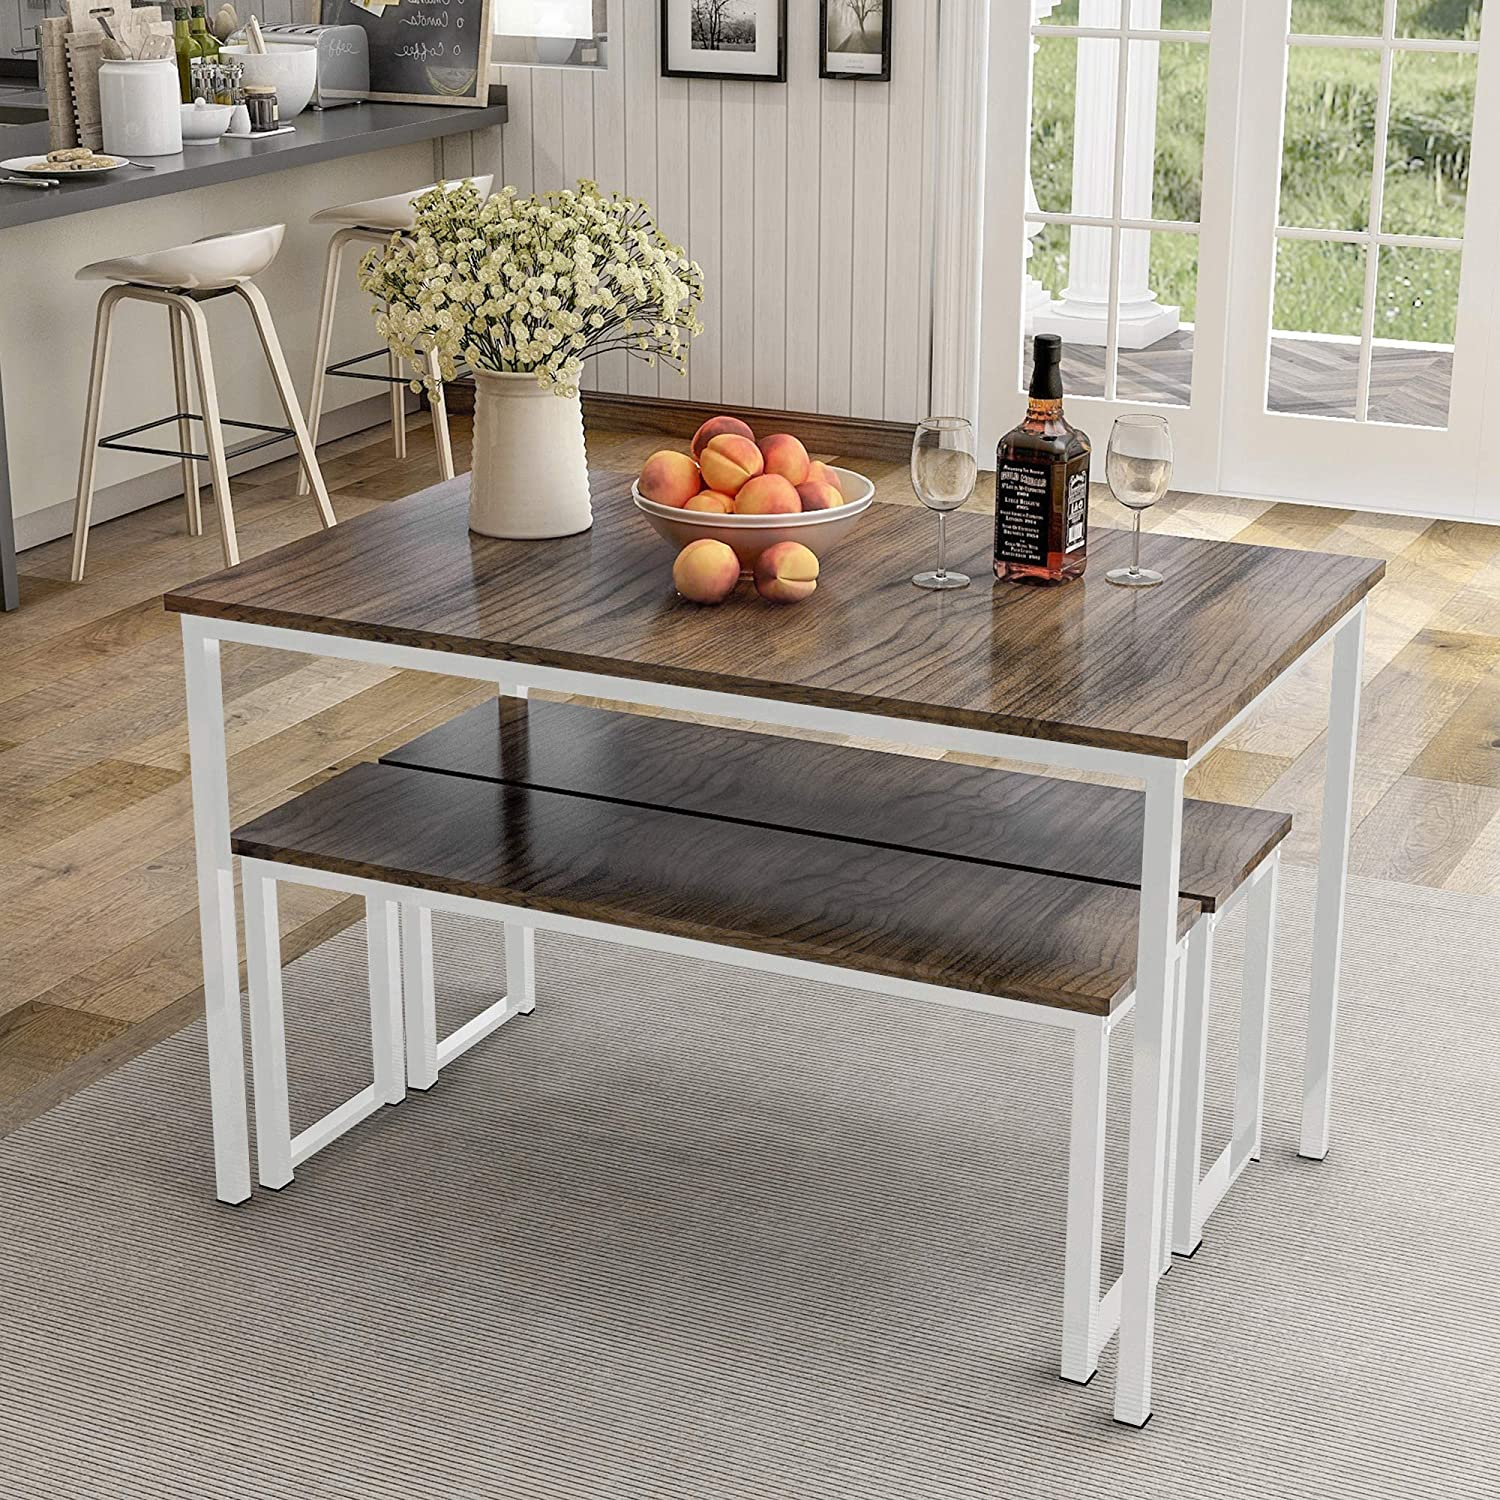 3 Piece Dining Table Set Contemporary Kitchen Dinner Table With 2 Benches For Home Or Hotel Dining Room Bar Pub Small Spaces Home Furniture Furniture Kitchen Dining Room Furniture Florent Dejardin Fr